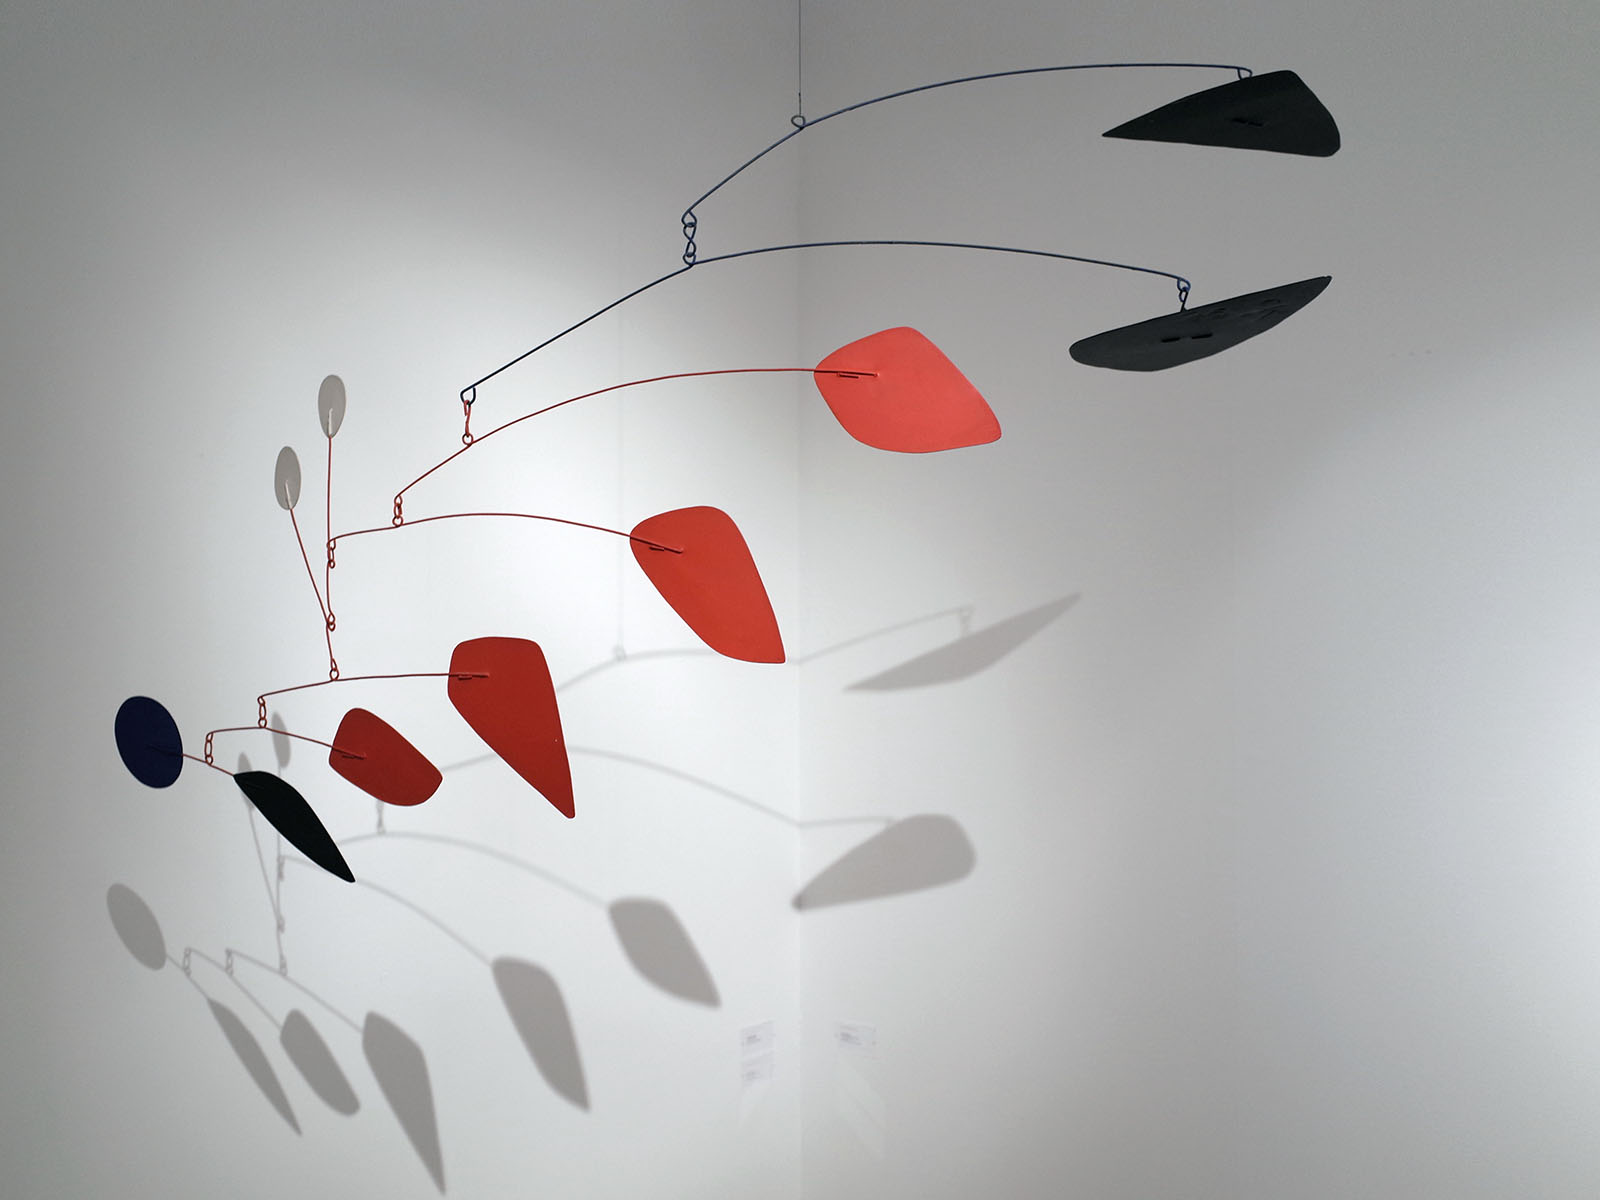 calder black and blue 1975